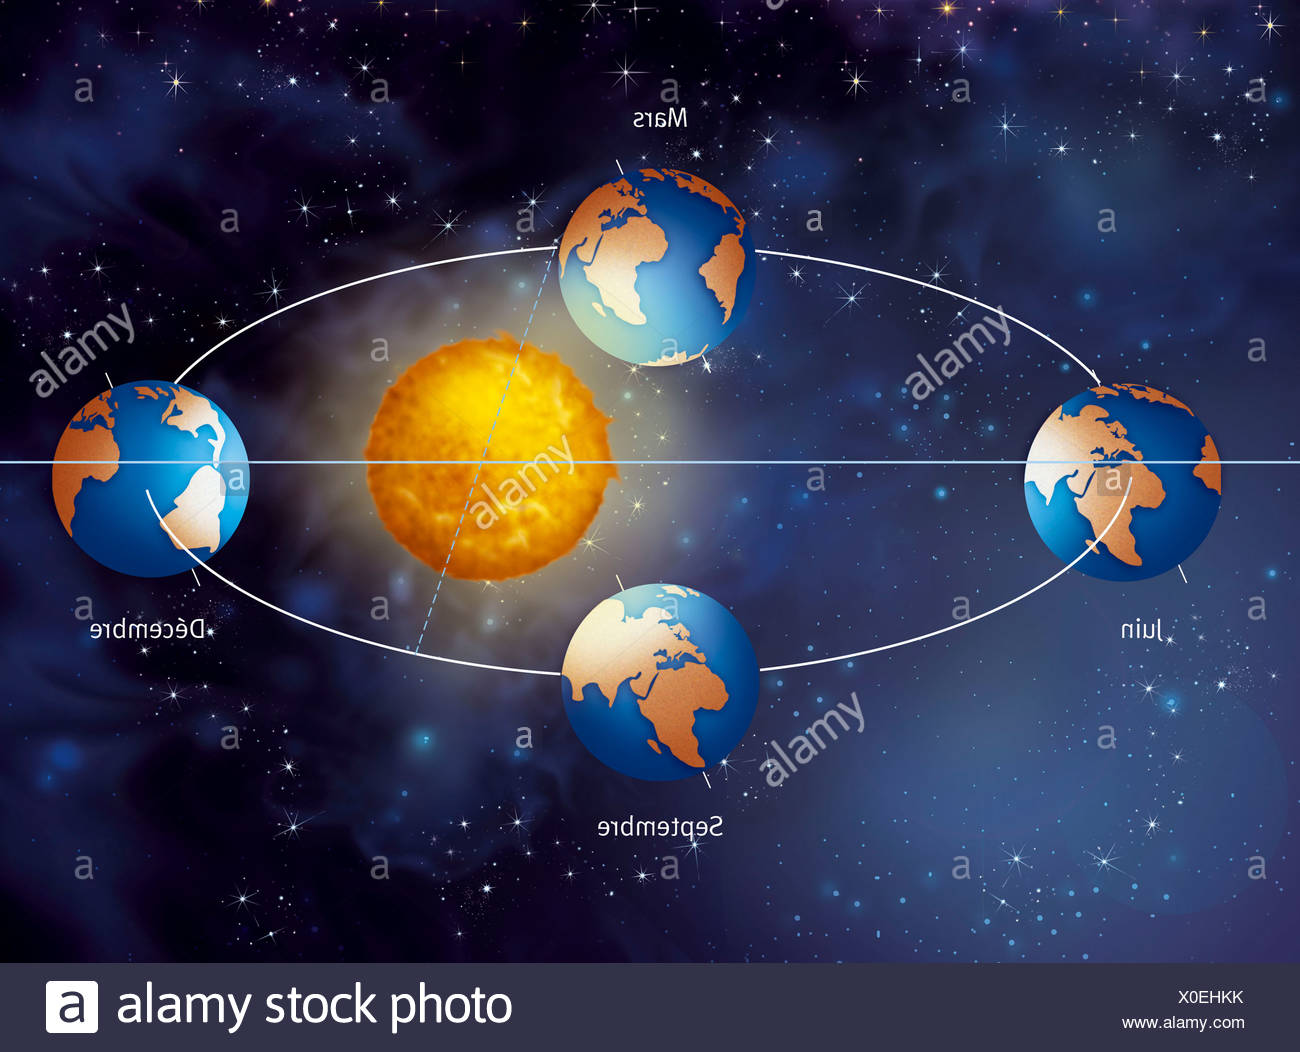 THE EARTH - Stock Image